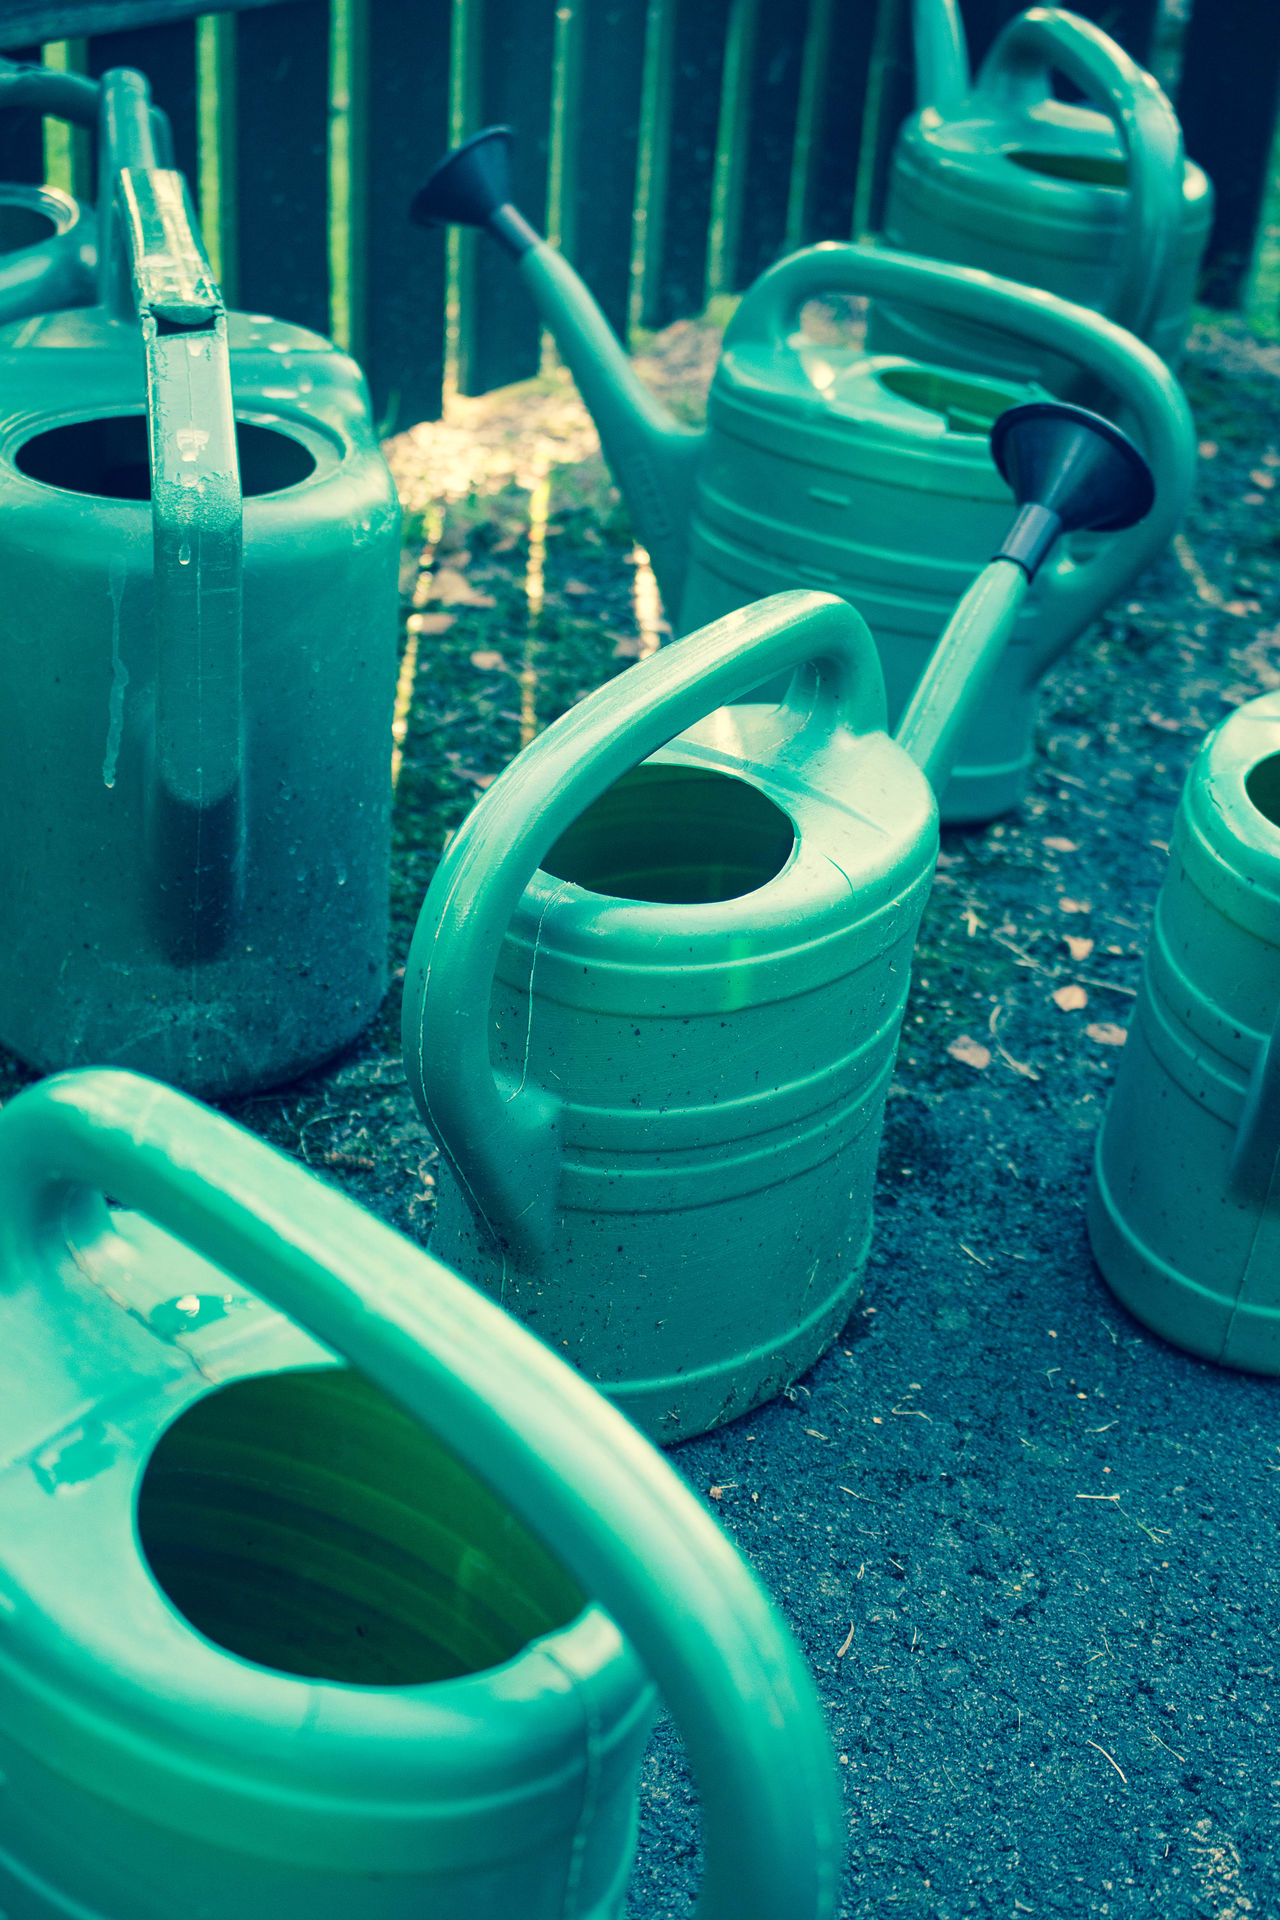 A green-tinted world of watering cans. Bucket Buckets Close-up Day Green Green Color No People Outdoors Water Bucket Water Jug Watering Can